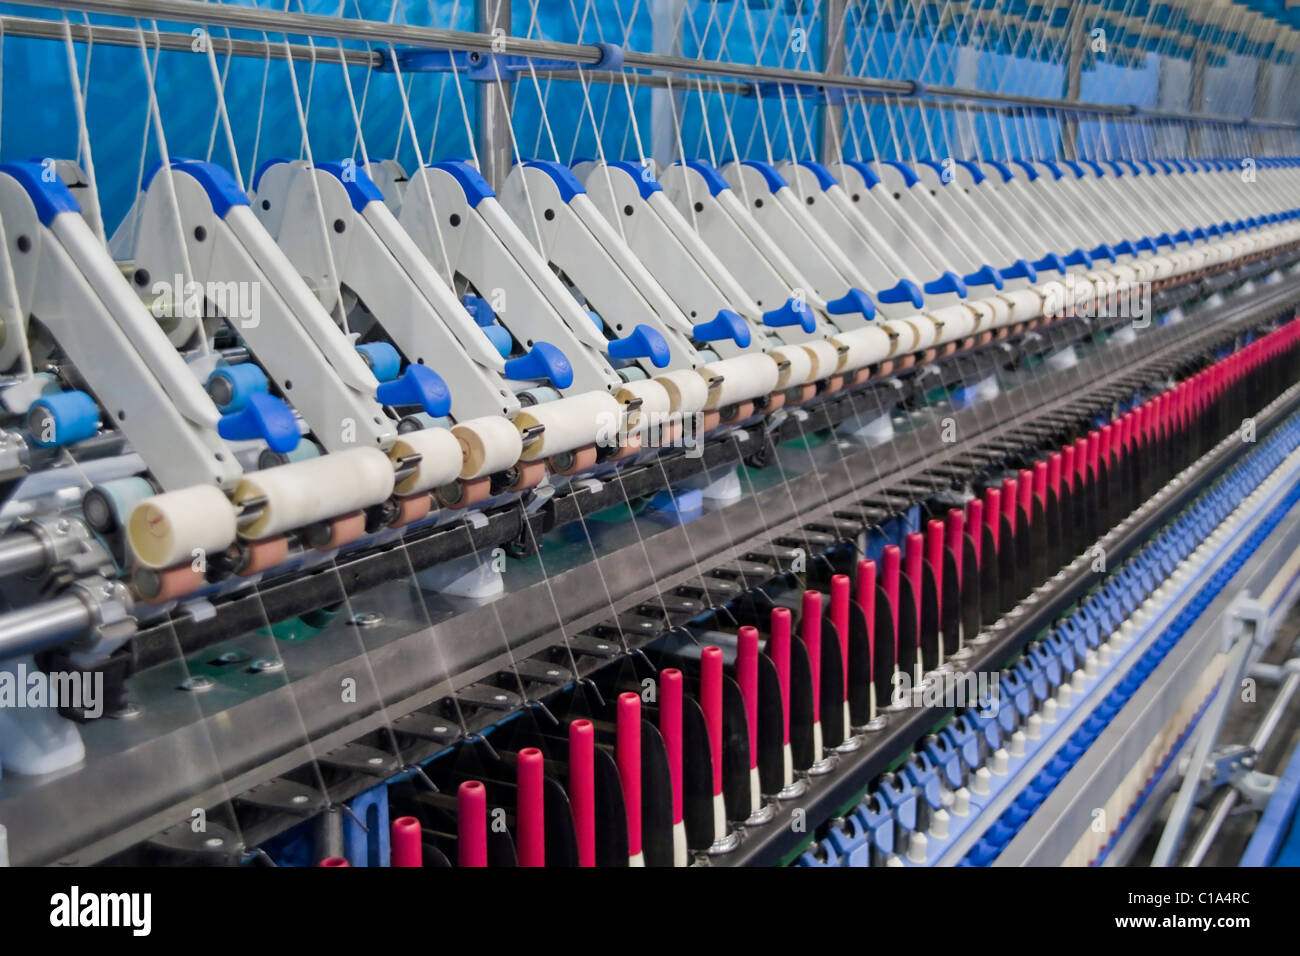 Cotton yarn production in a textile factory - Stock Image